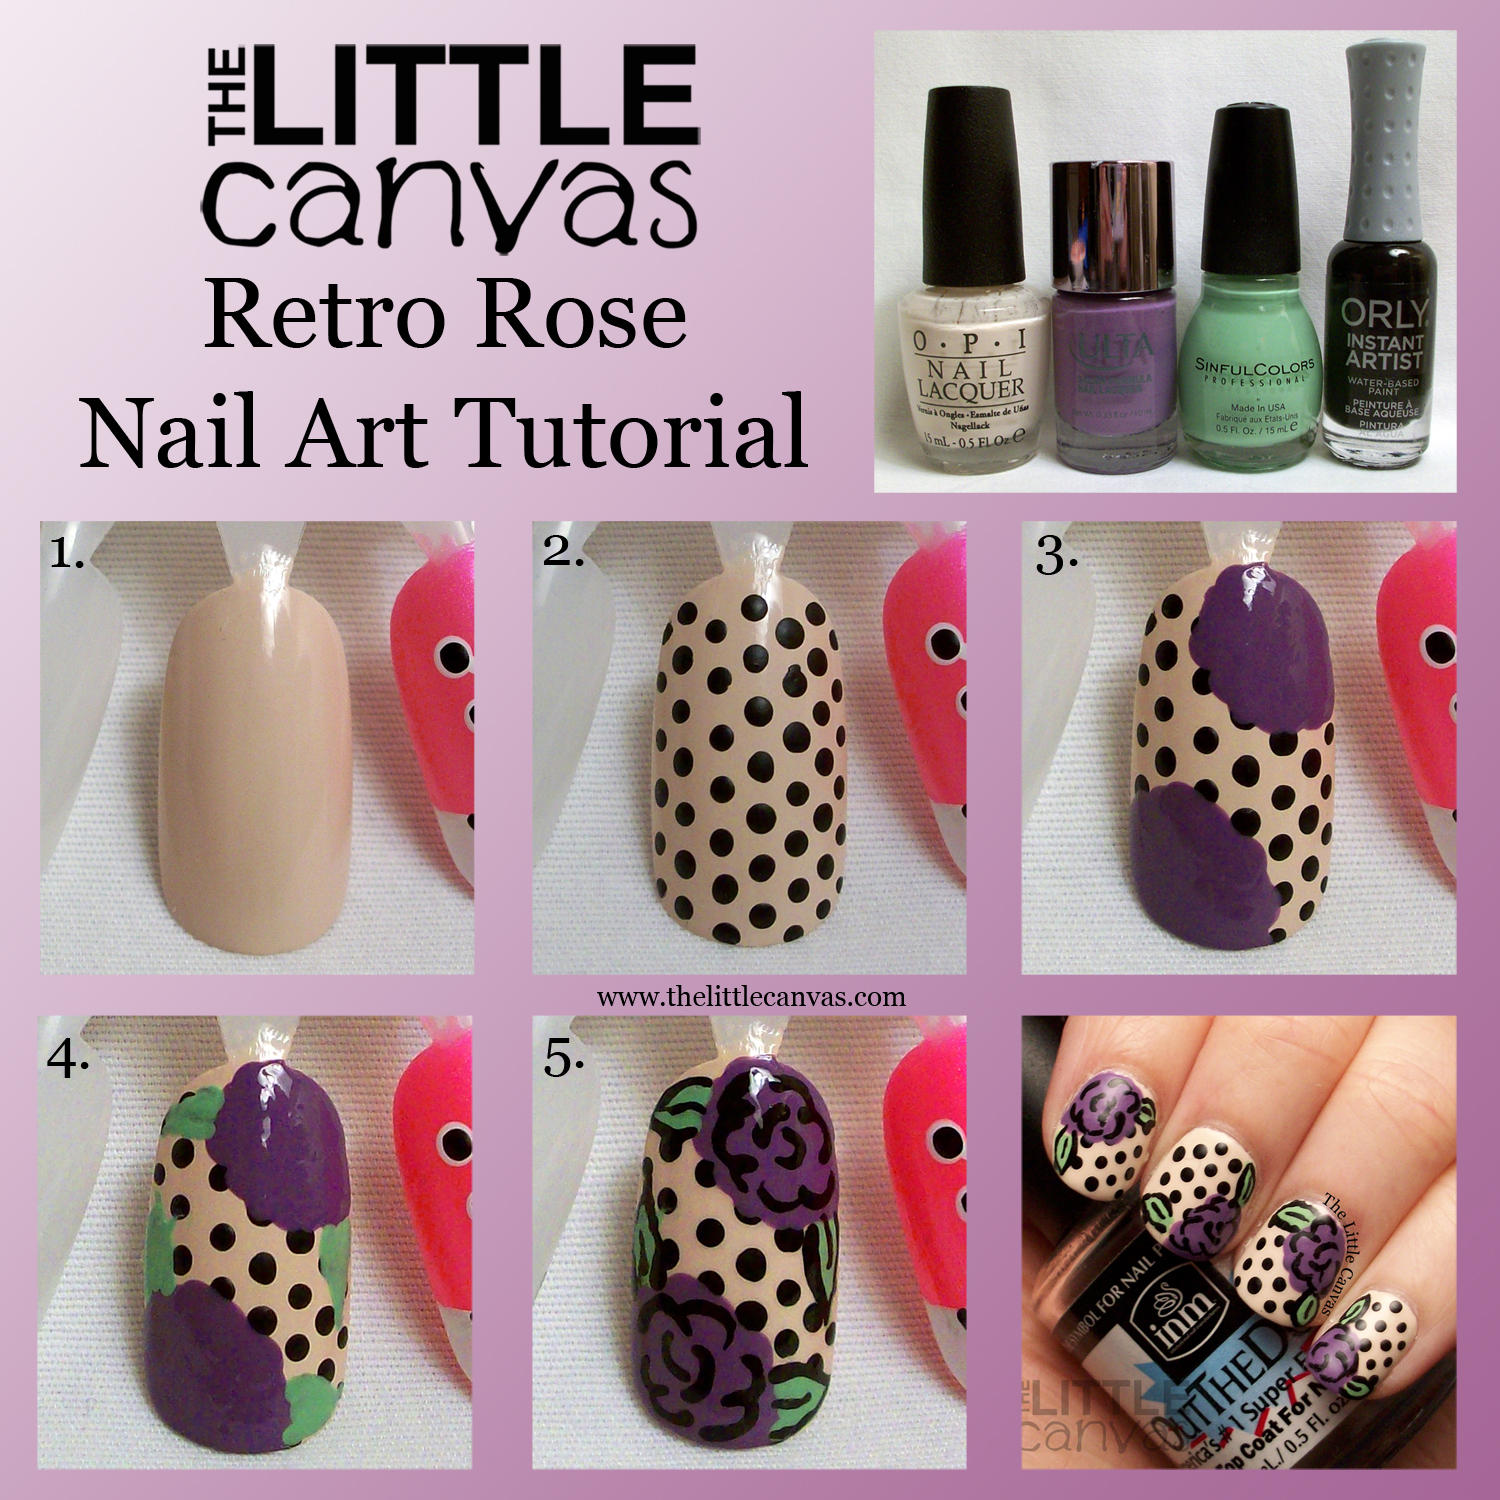 Retro Rose Nail Art Tutorial - The Little Canvas